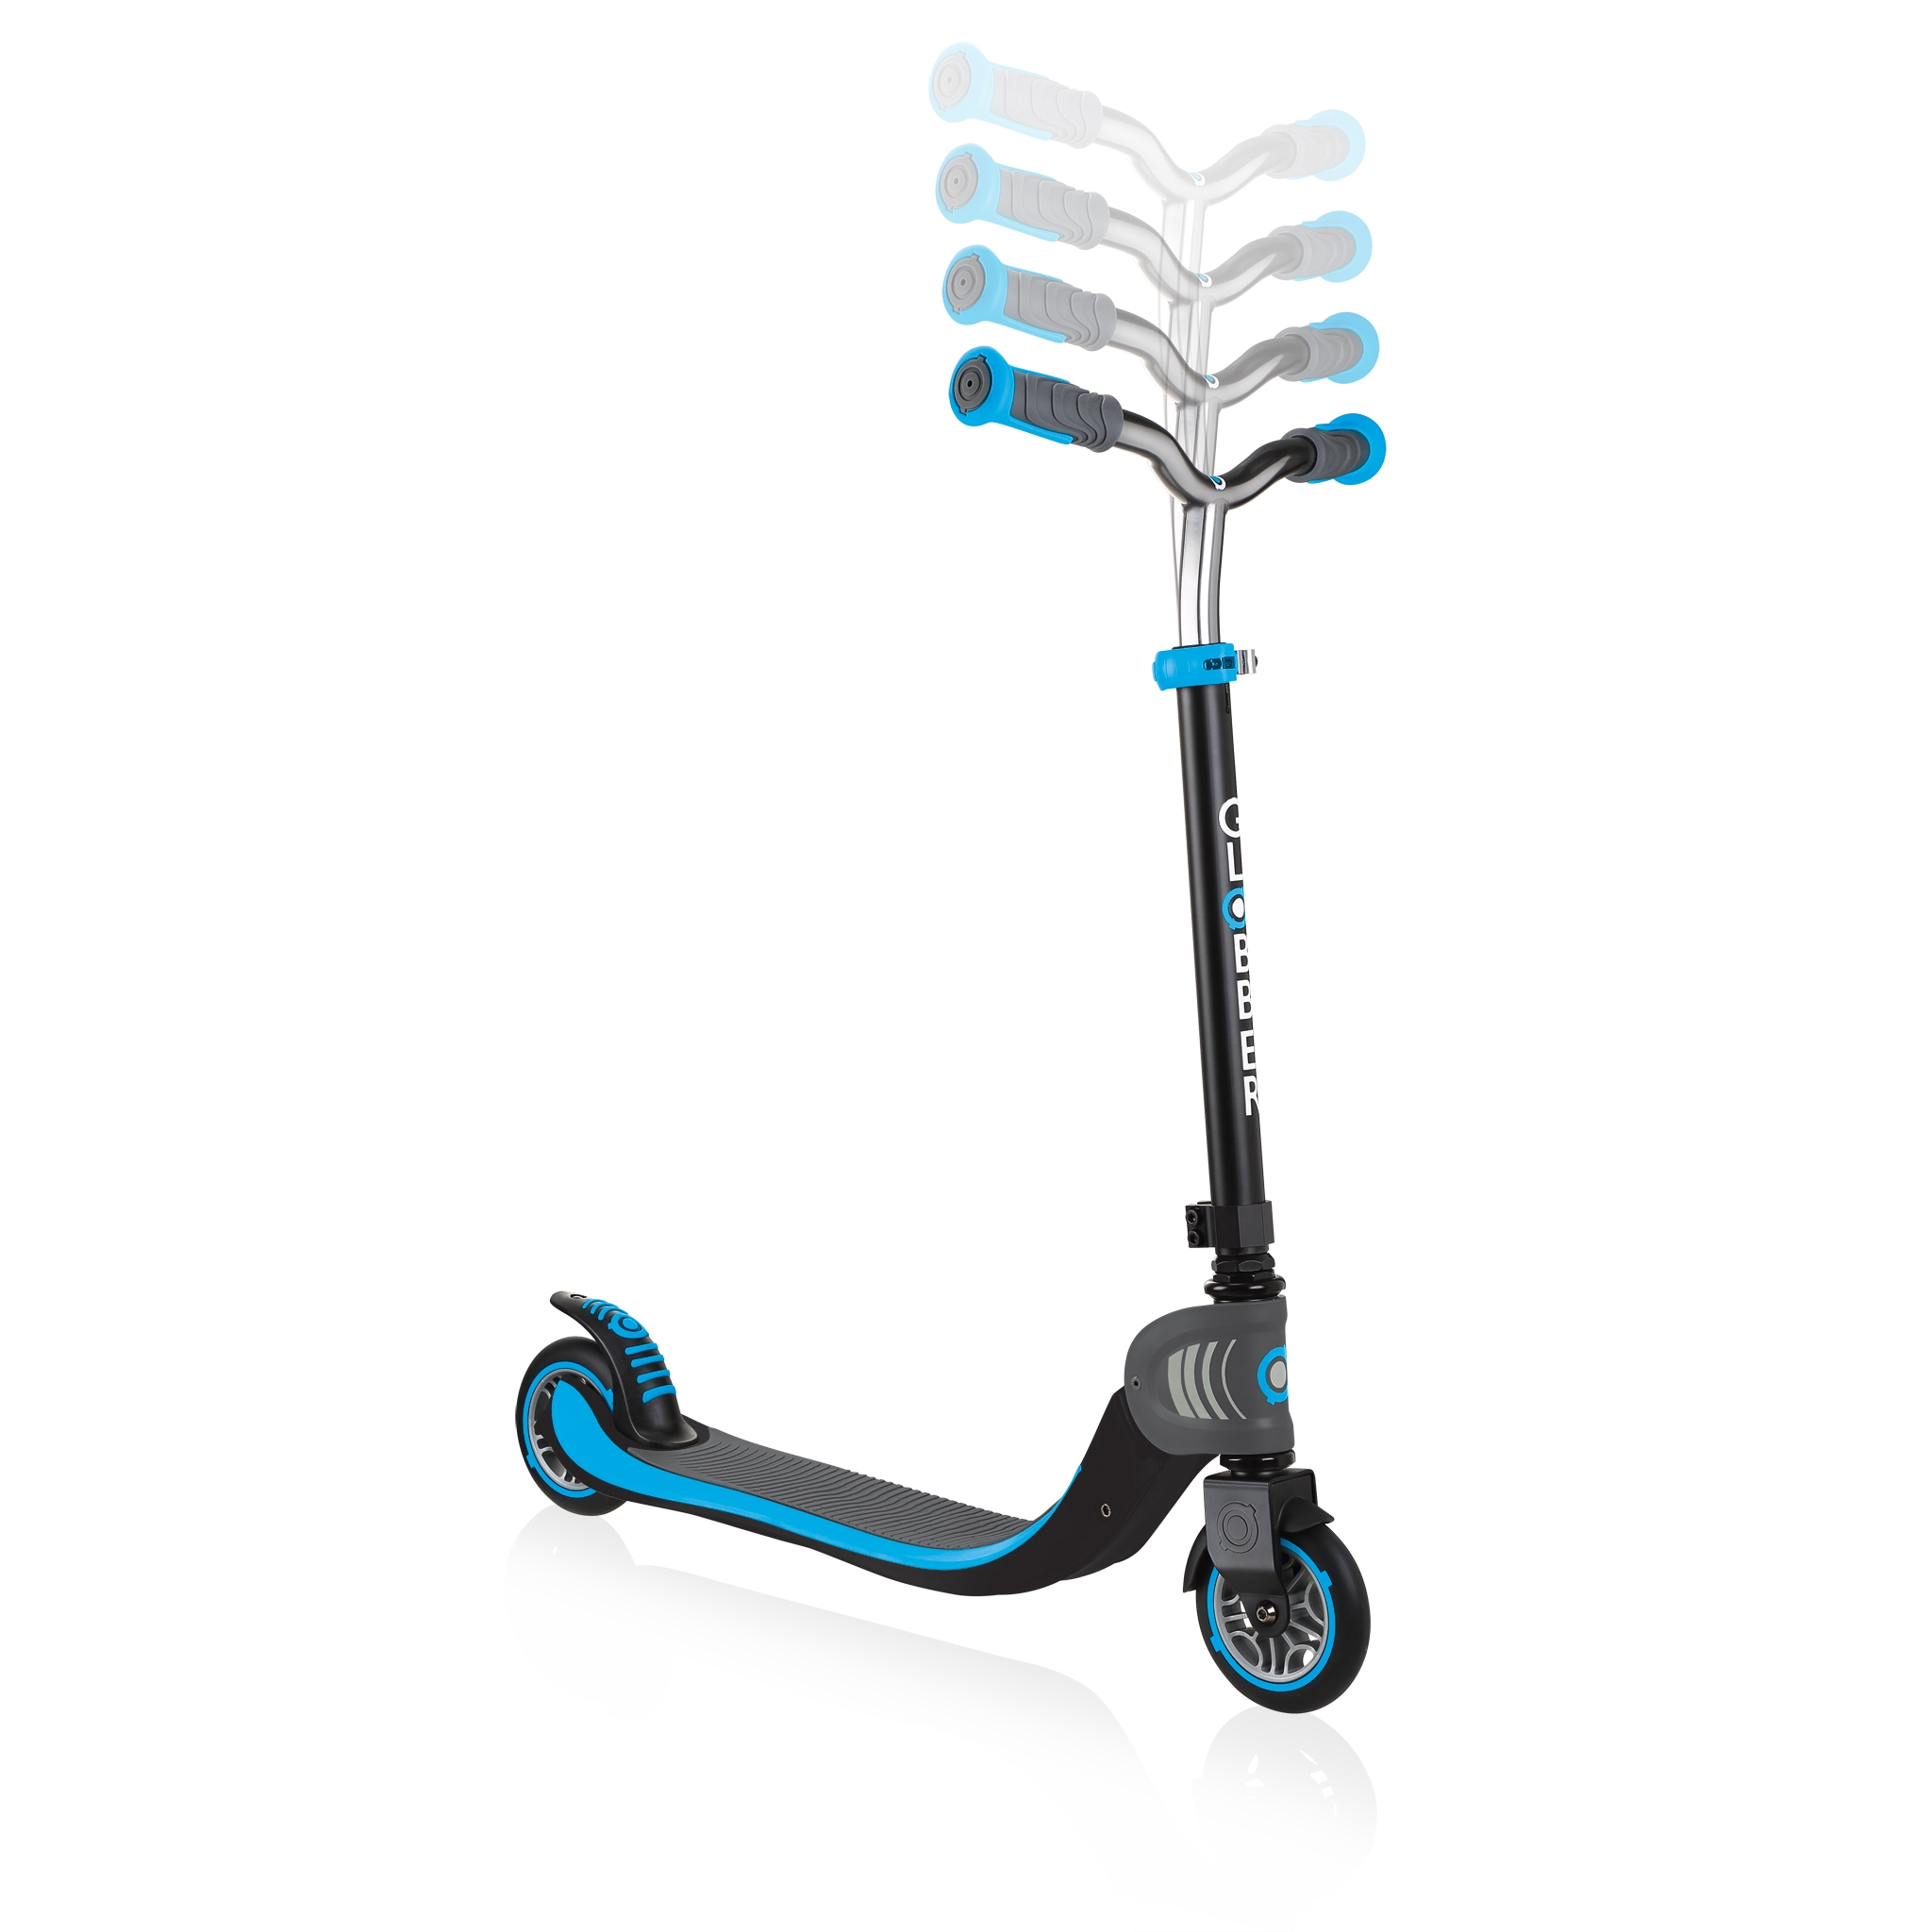 FLOW-FOLDABLE-125-2-wheel-scooter-for-kids-with-adjustable-t-bar-sky-blue